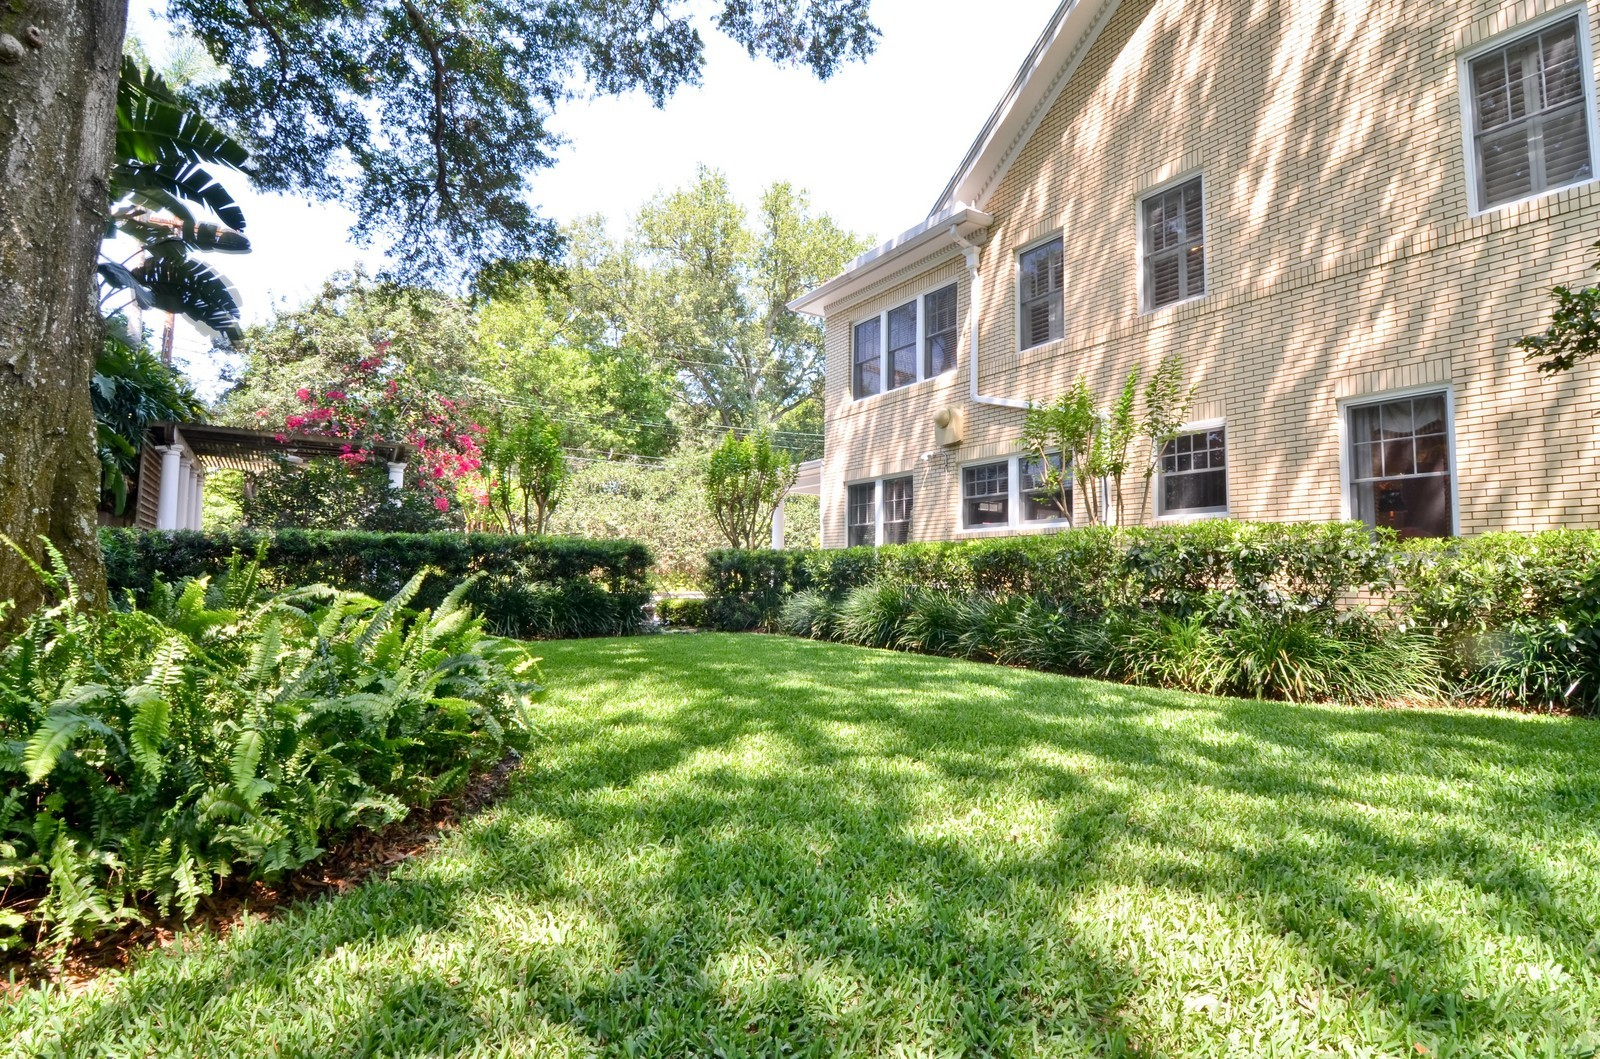 Real Estate Photography - 2223 S. Bendelow Trail, Tampa, FL, 33629 - Location 5